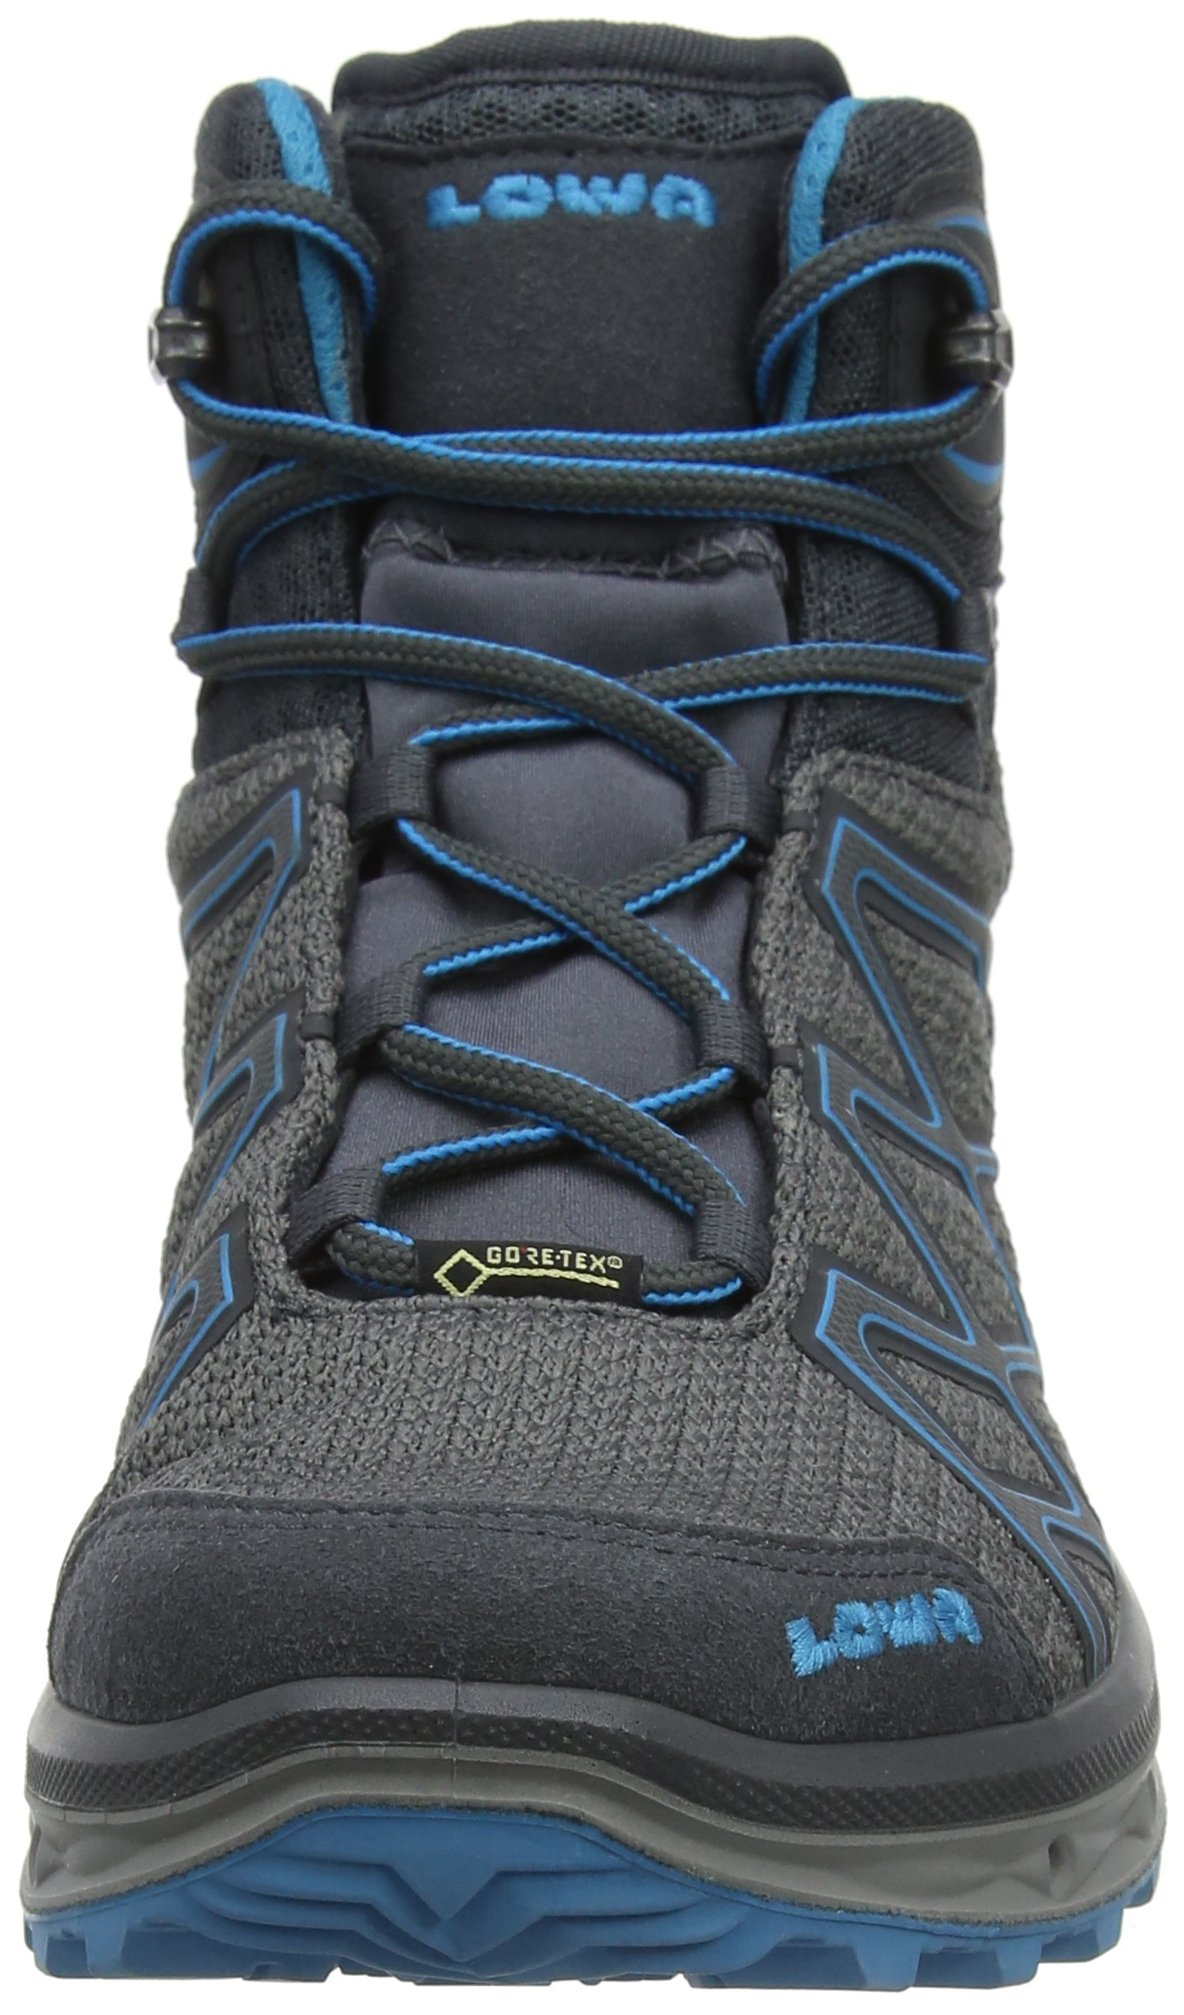 81s2Wc0XbxL - Lowa Women's AEROX GTX MID W High Rise Hiking Boots